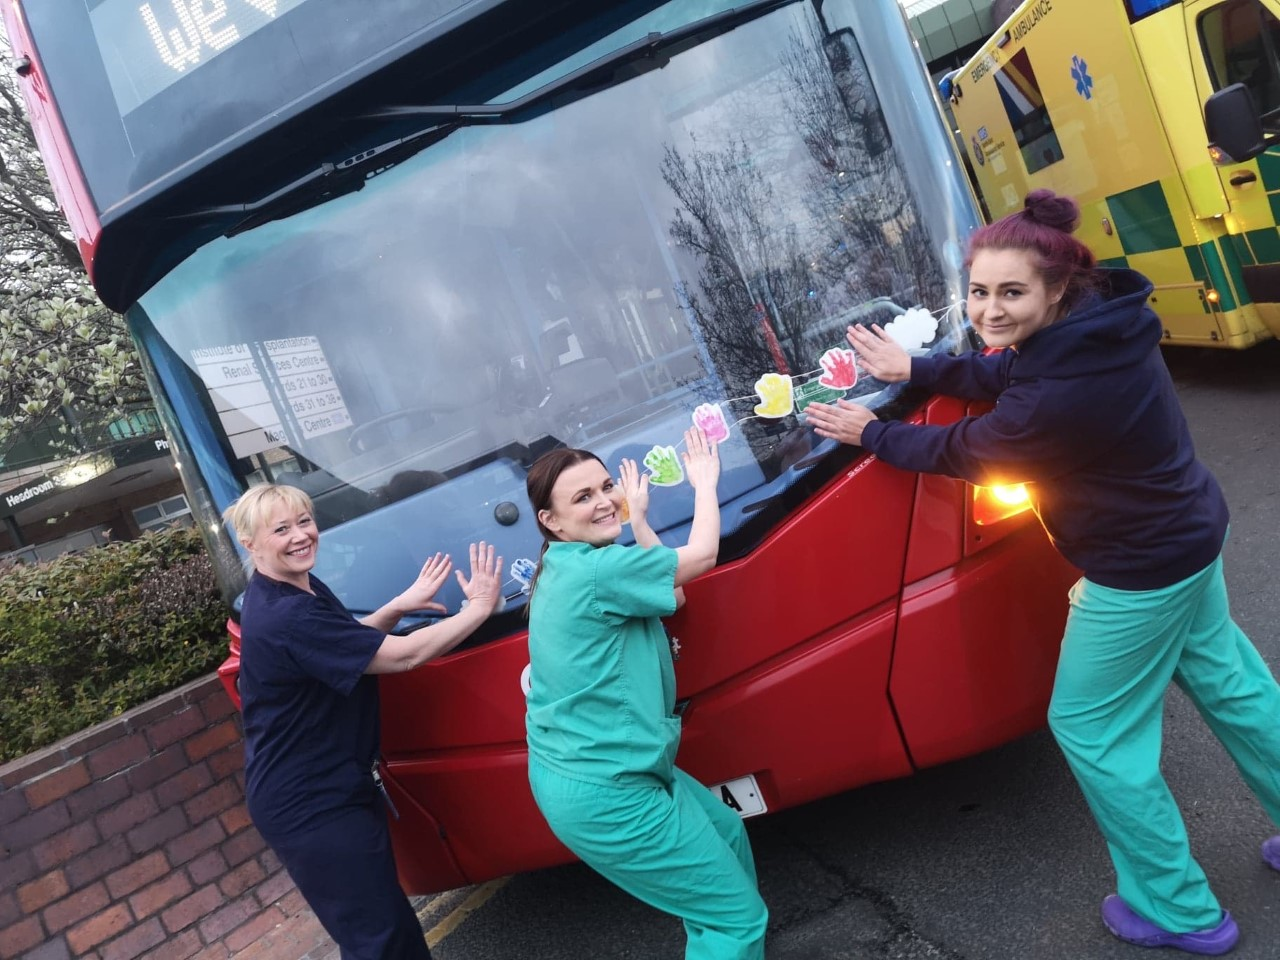 NHS key workers from Freeman Hospital with a Go North East bus